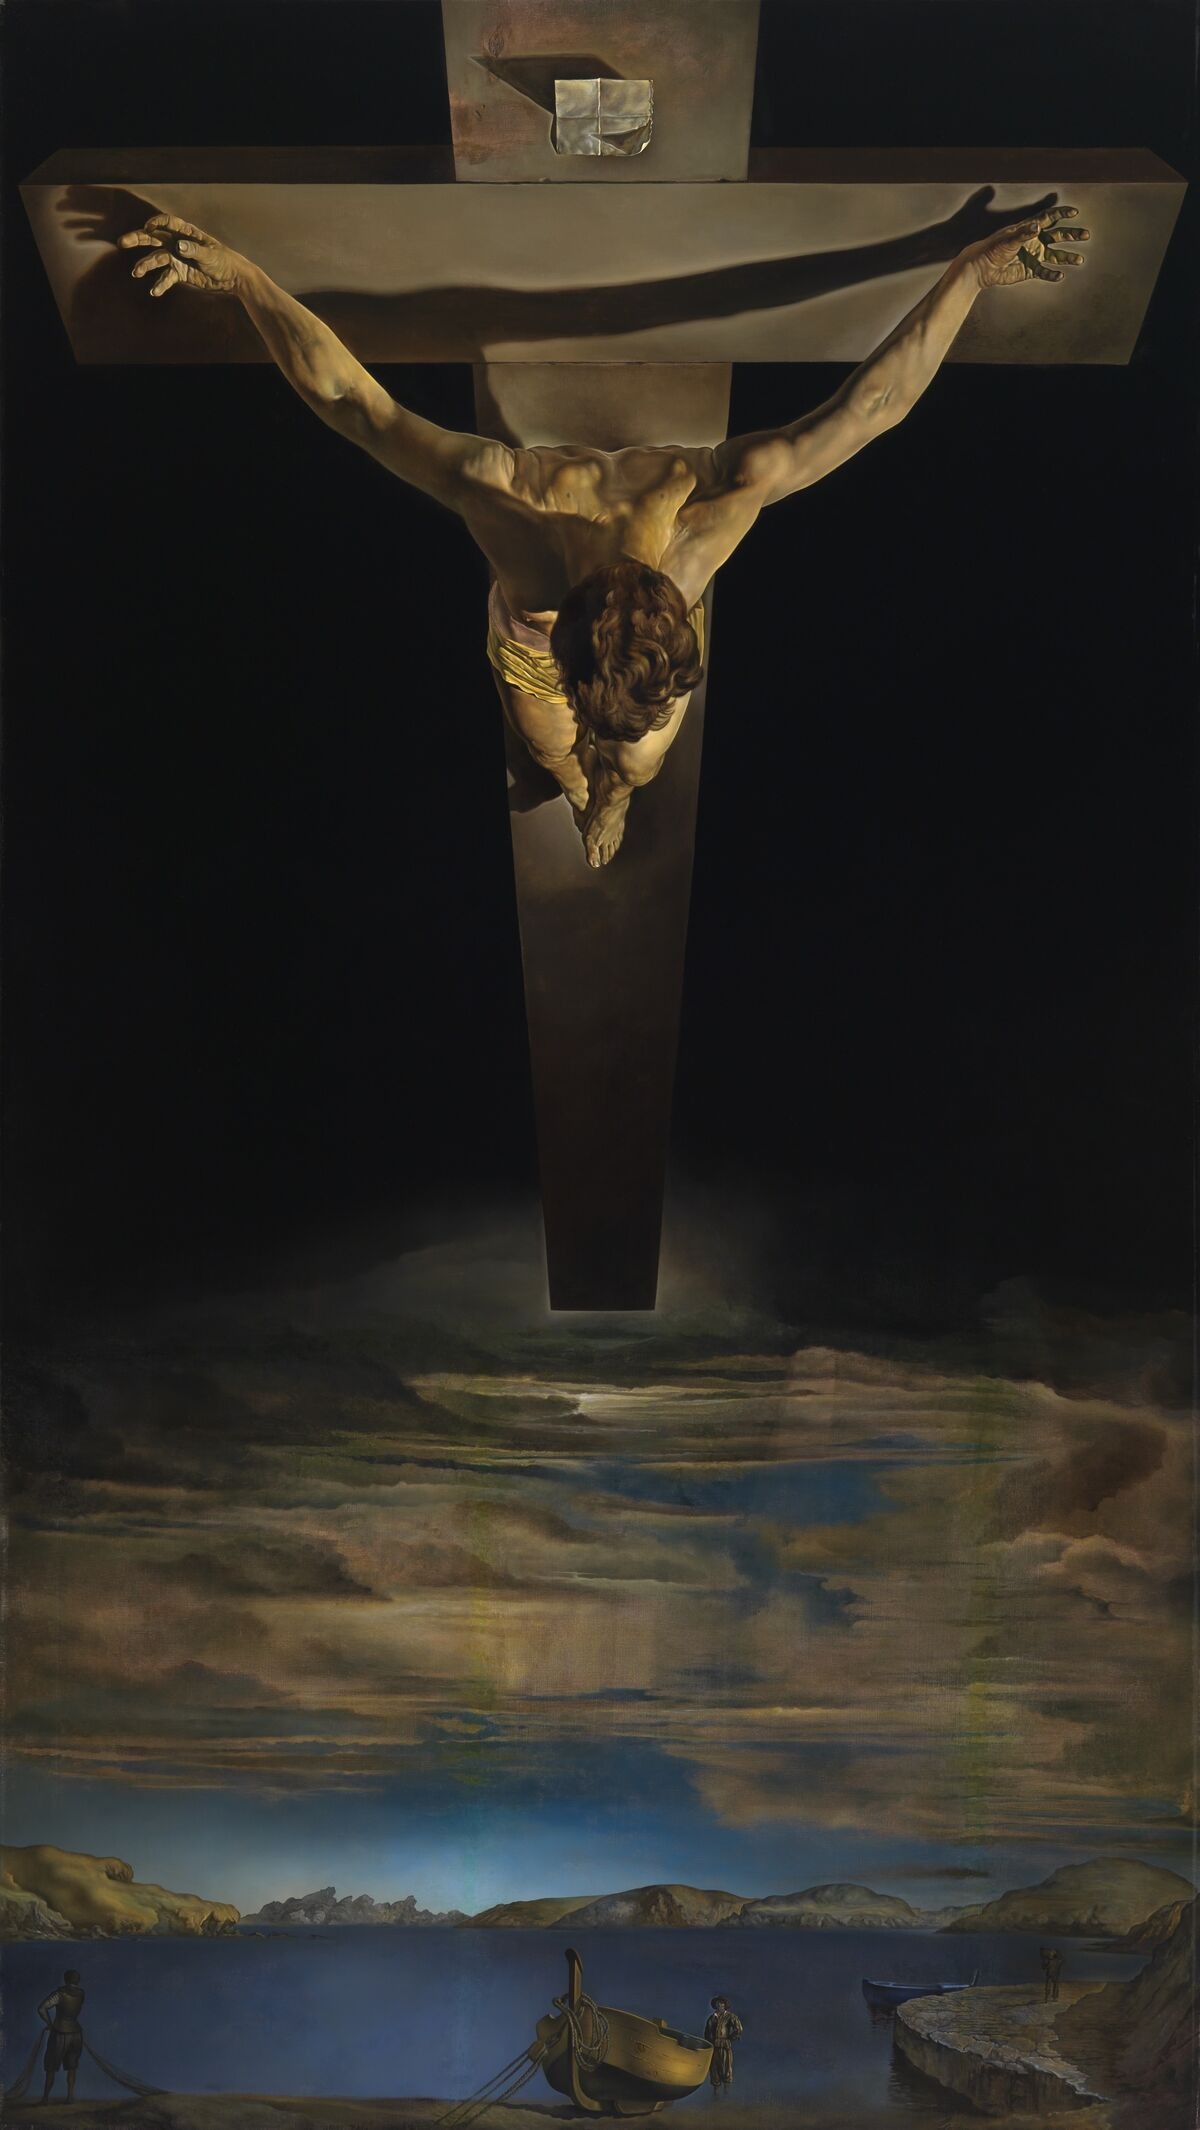 Salvador Dalí, Christ of St. John of the Cross, c. 1951. Kelvingrove Art Gallery and Museum. © CSG CIC Glasgow Museums Collection.